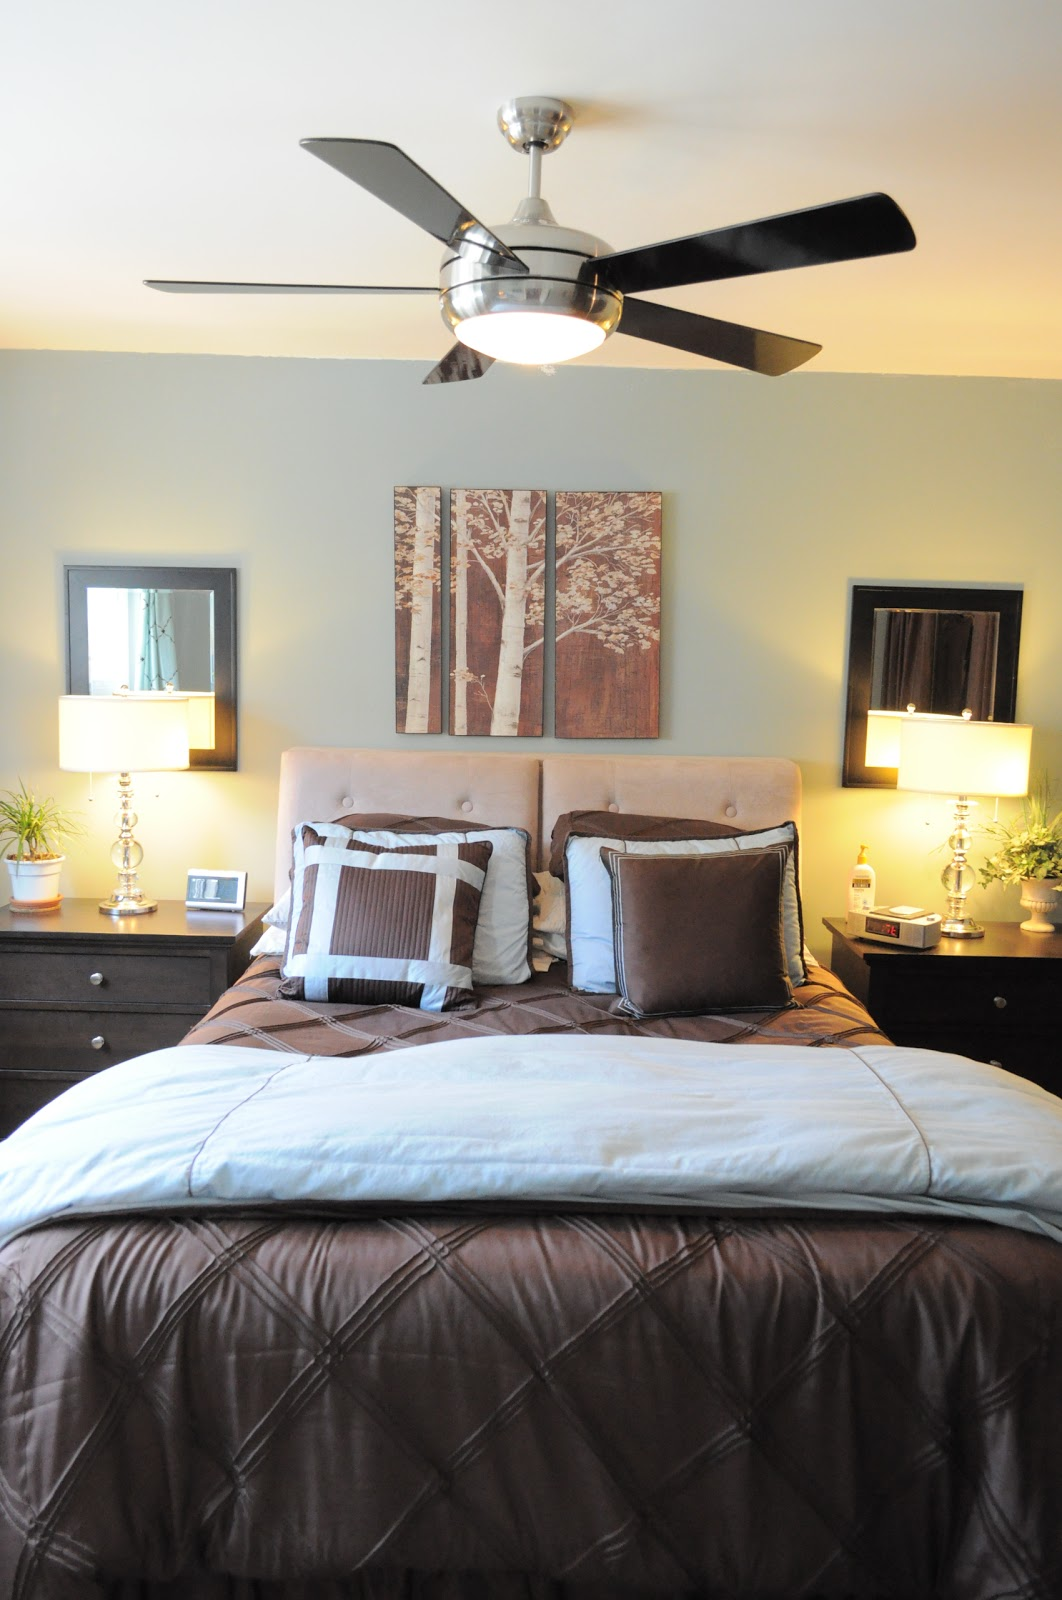 Our master bedroom tricks to make it feel bigger for How to organize a small room